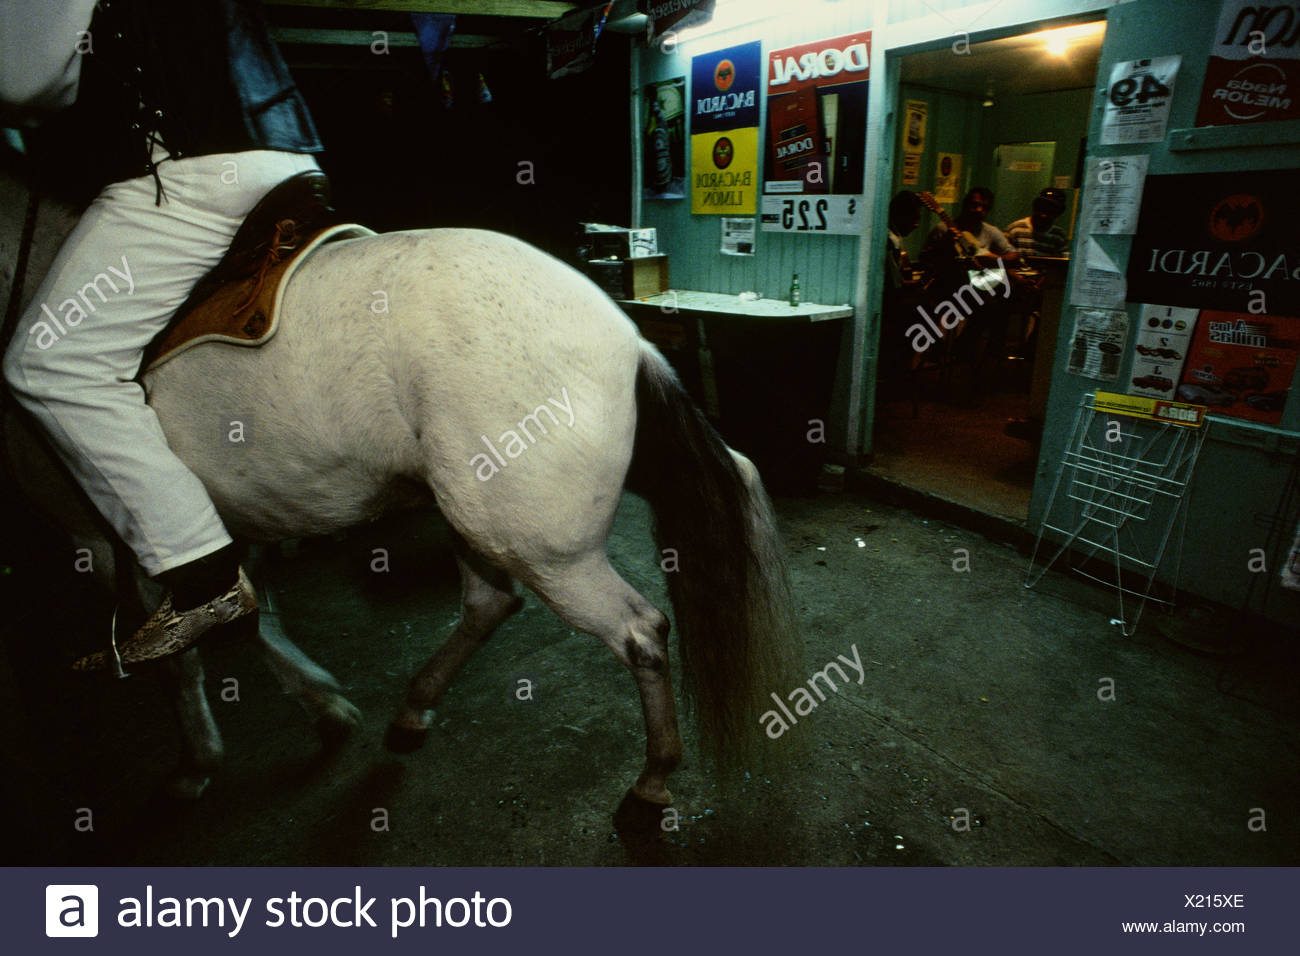 A man rides his horse and socializes outside a bar in Adjuntas. - Stock Image